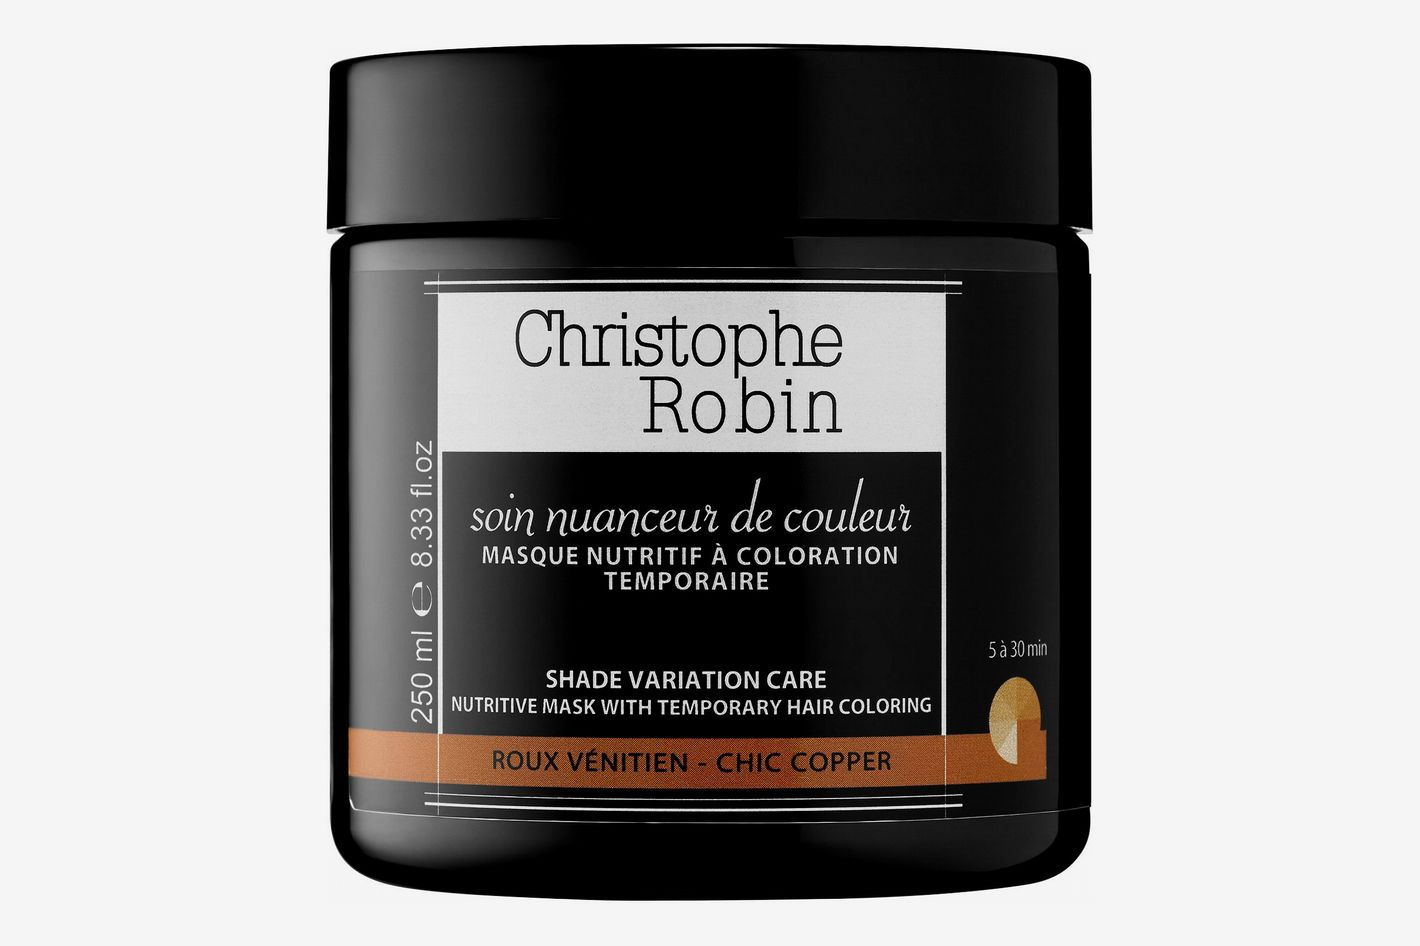 Christophe Robin Shade Variation Care Nutritive Mask With Temporary Coloring - Chic Copper